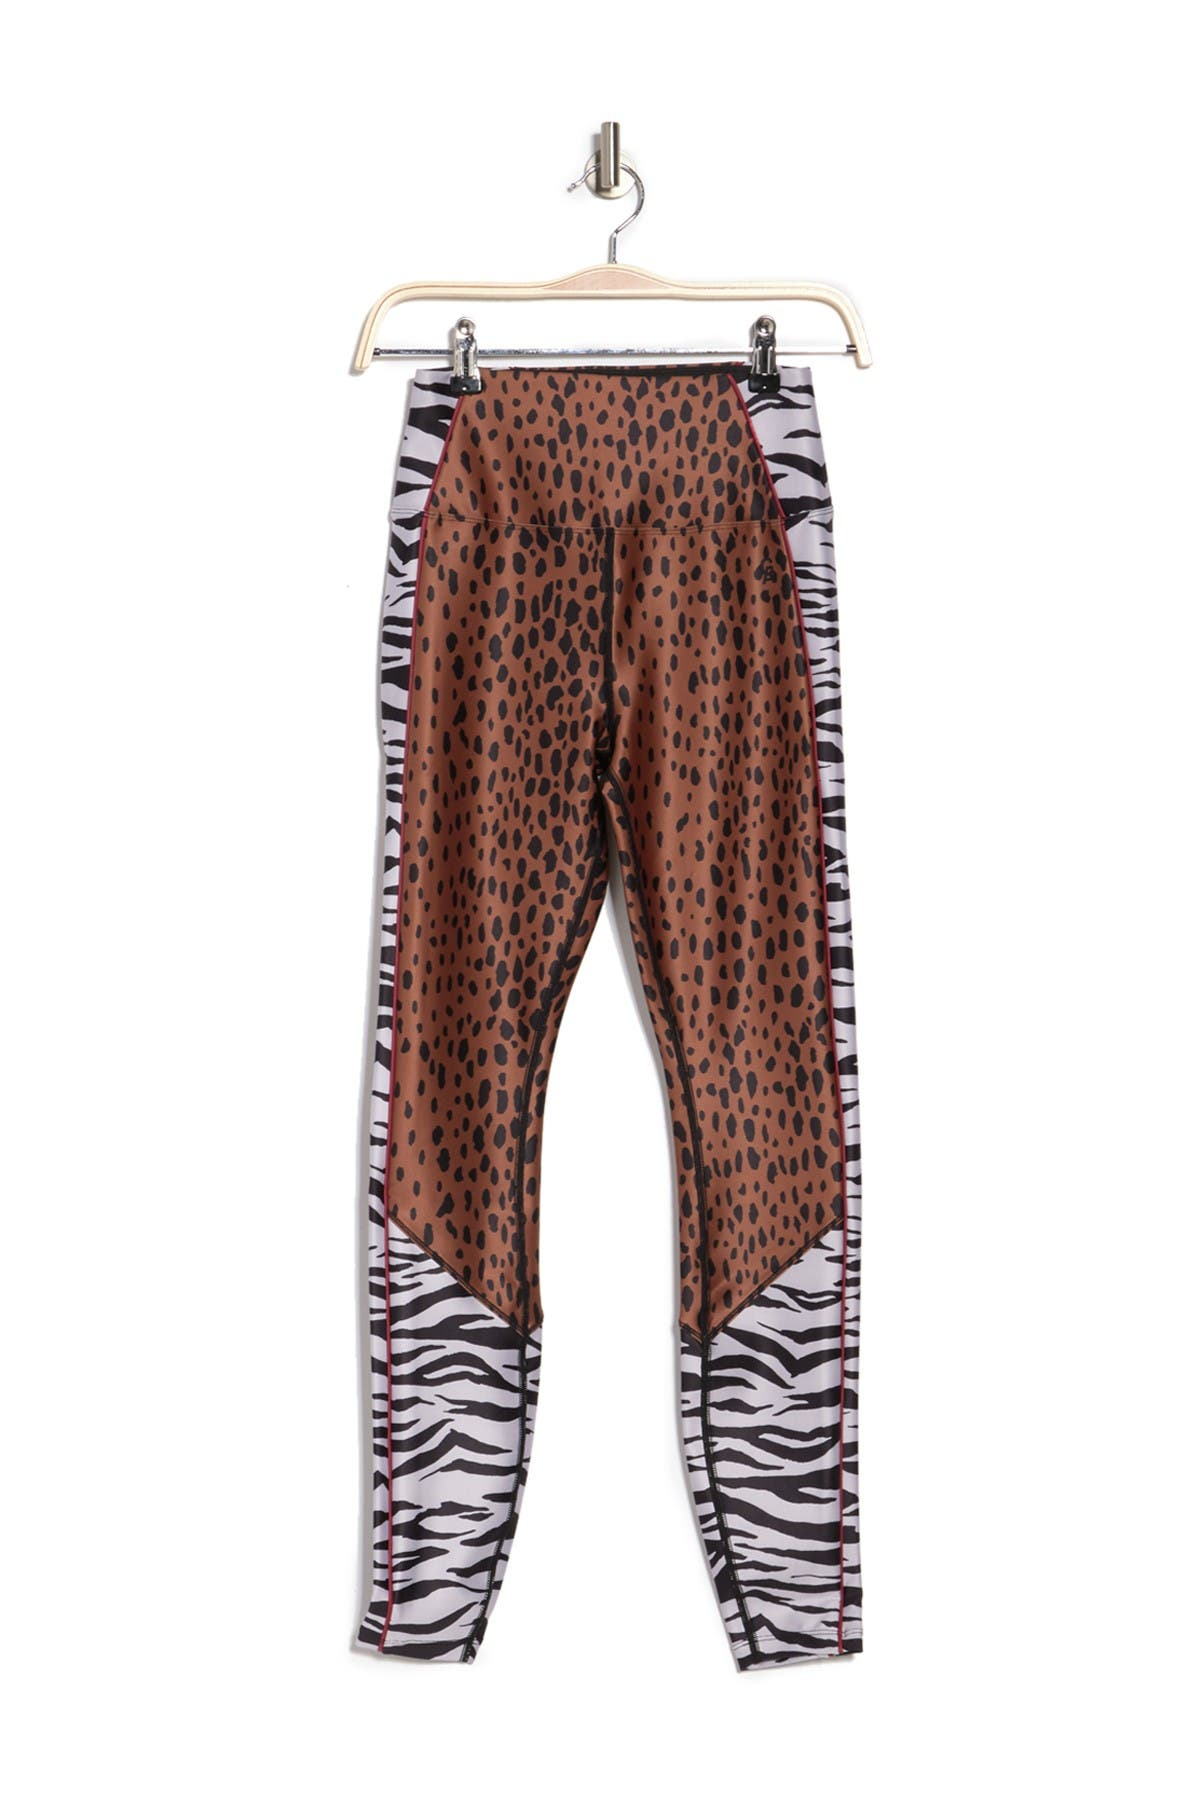 Image of Good American Mixed Animal Print High Waist Leggings